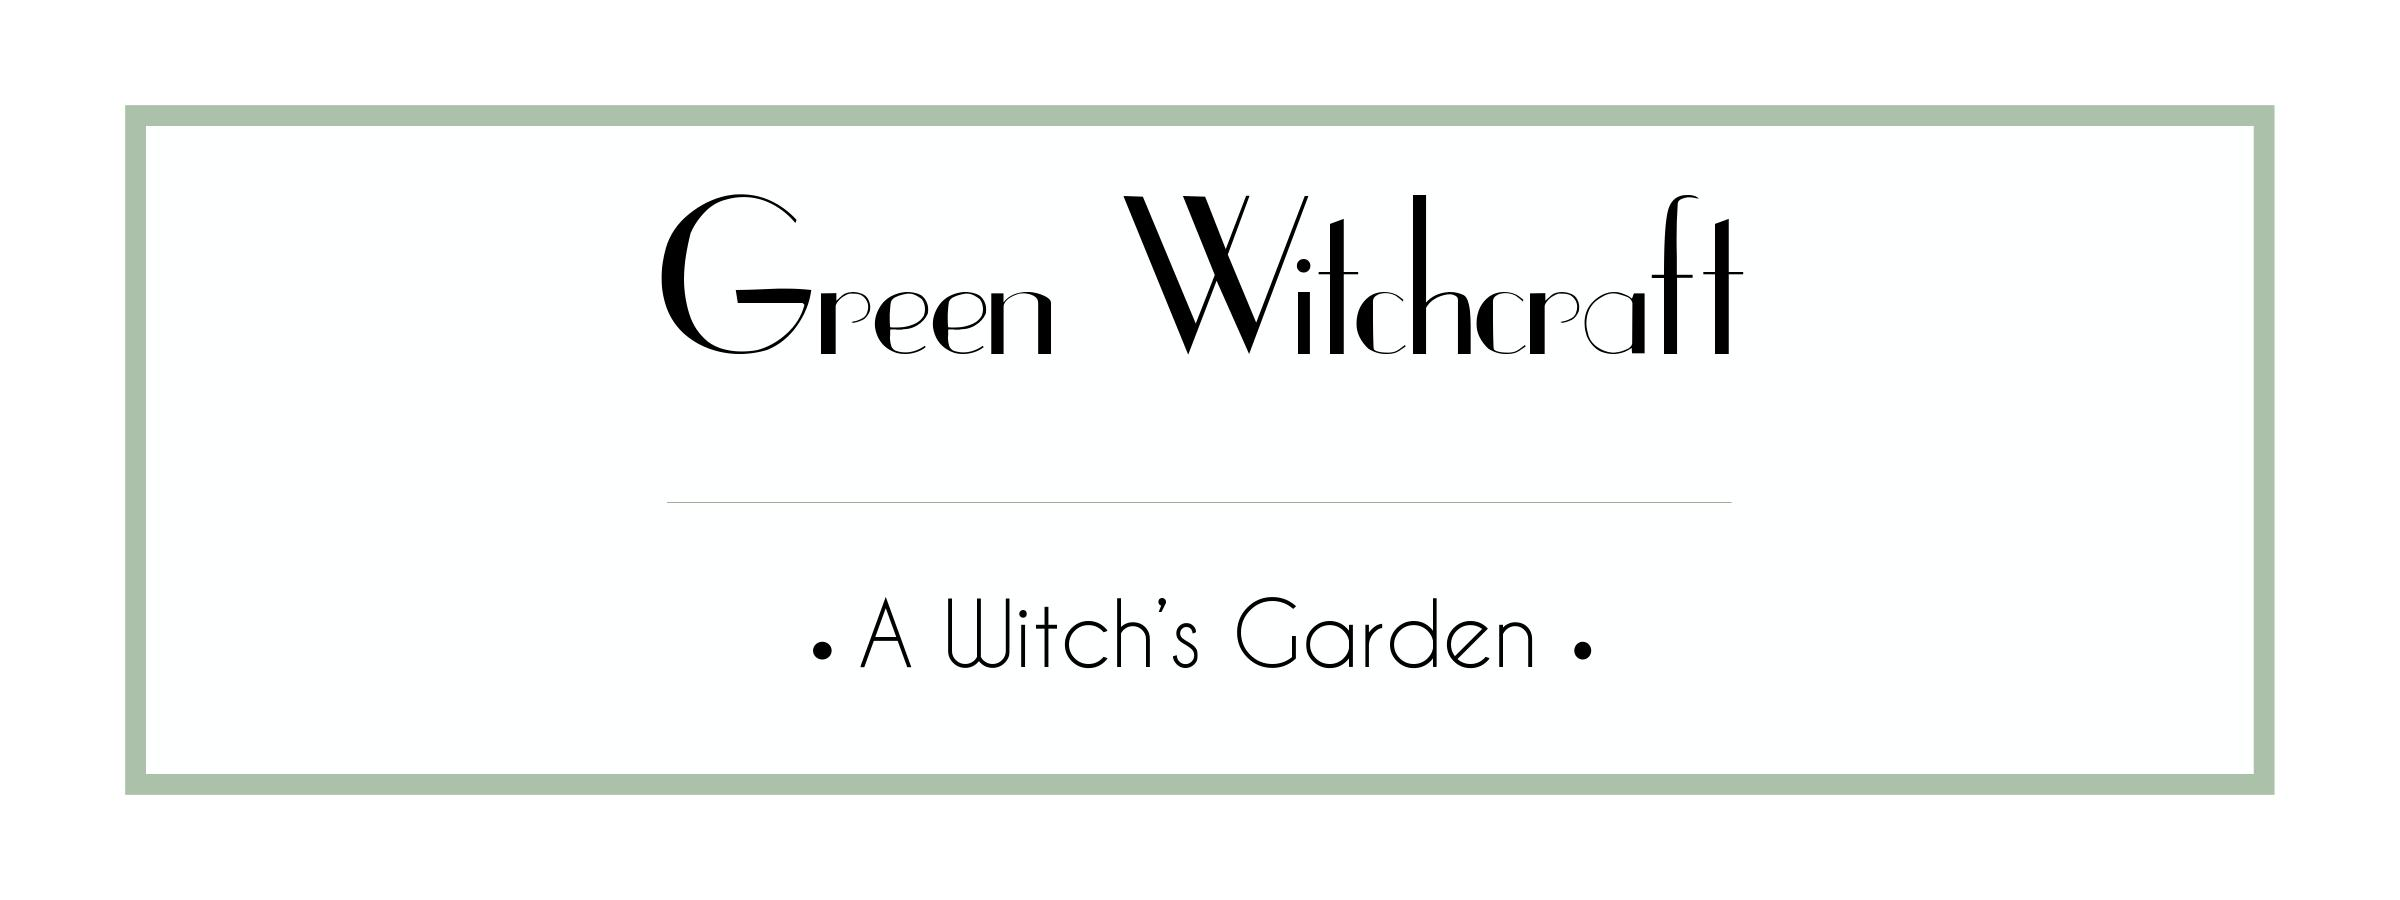 Green Witchcraft Course - A Witch's Garden